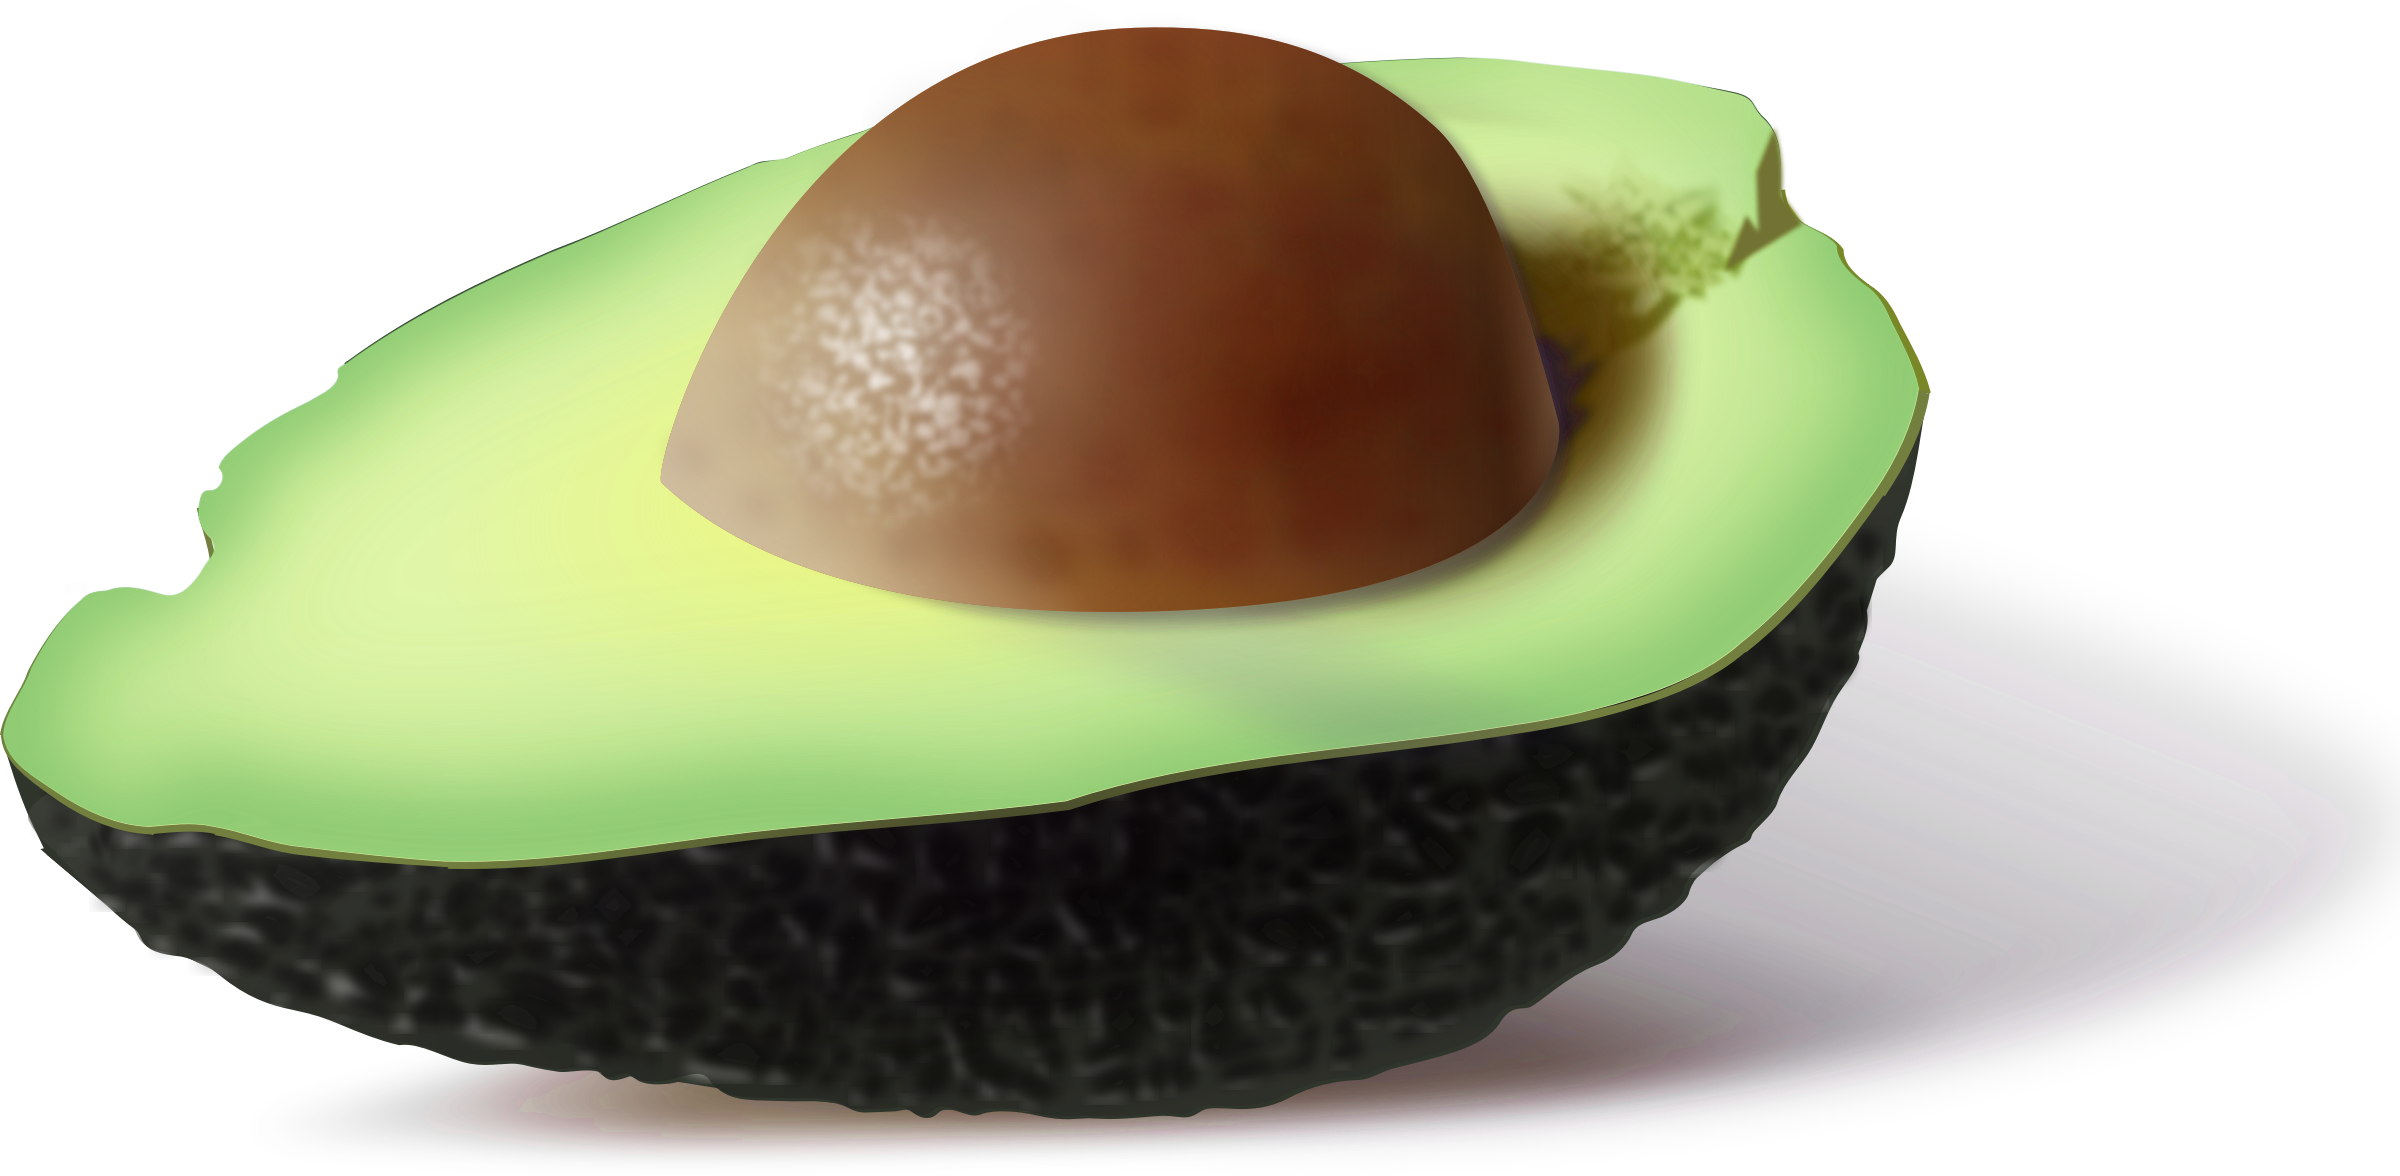 Avocado by pipo